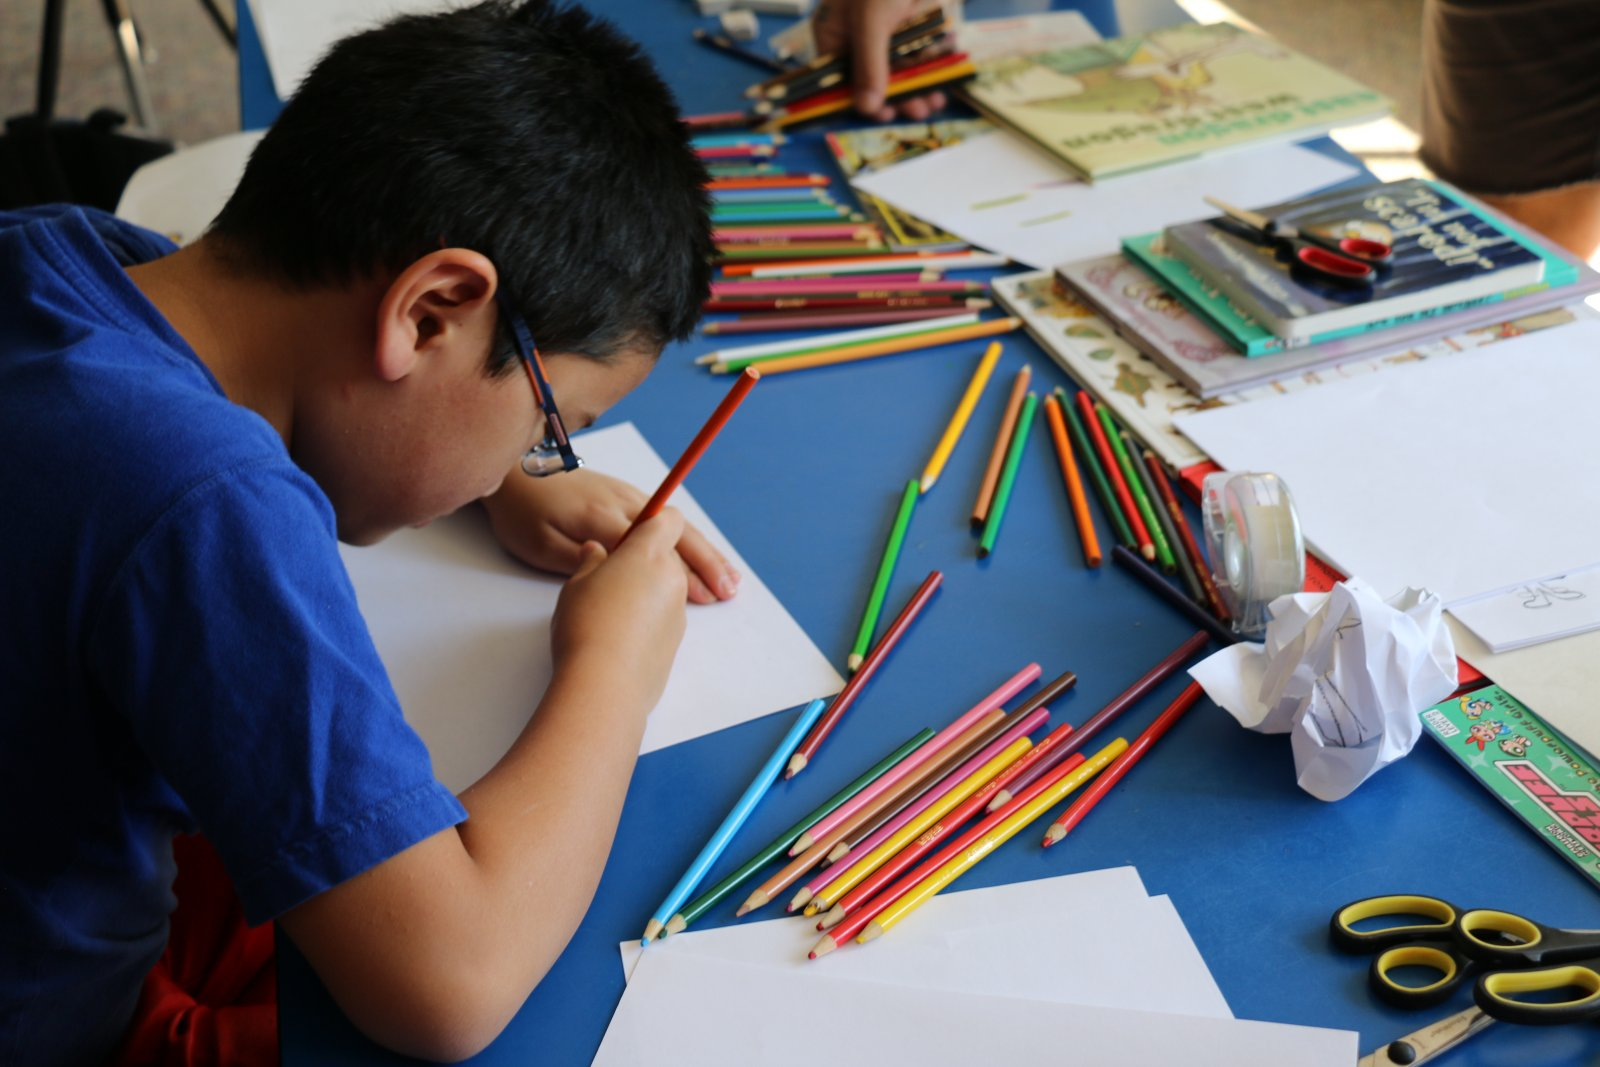 Saturday Academy student working on an illustration in an art class